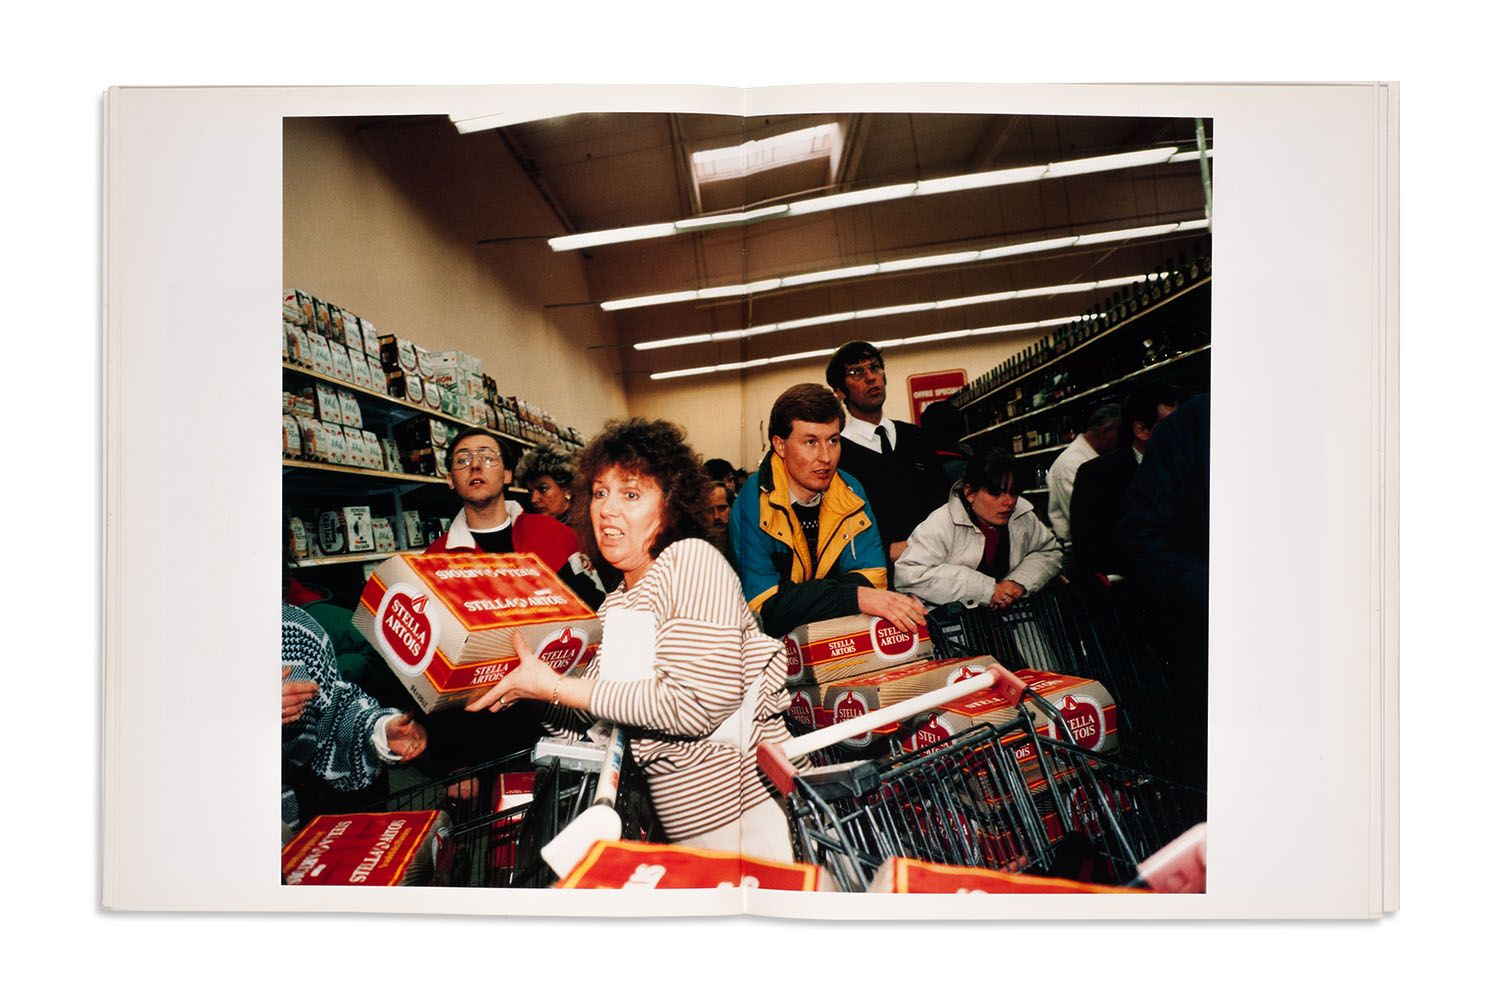 Books by MP   Martin Parr